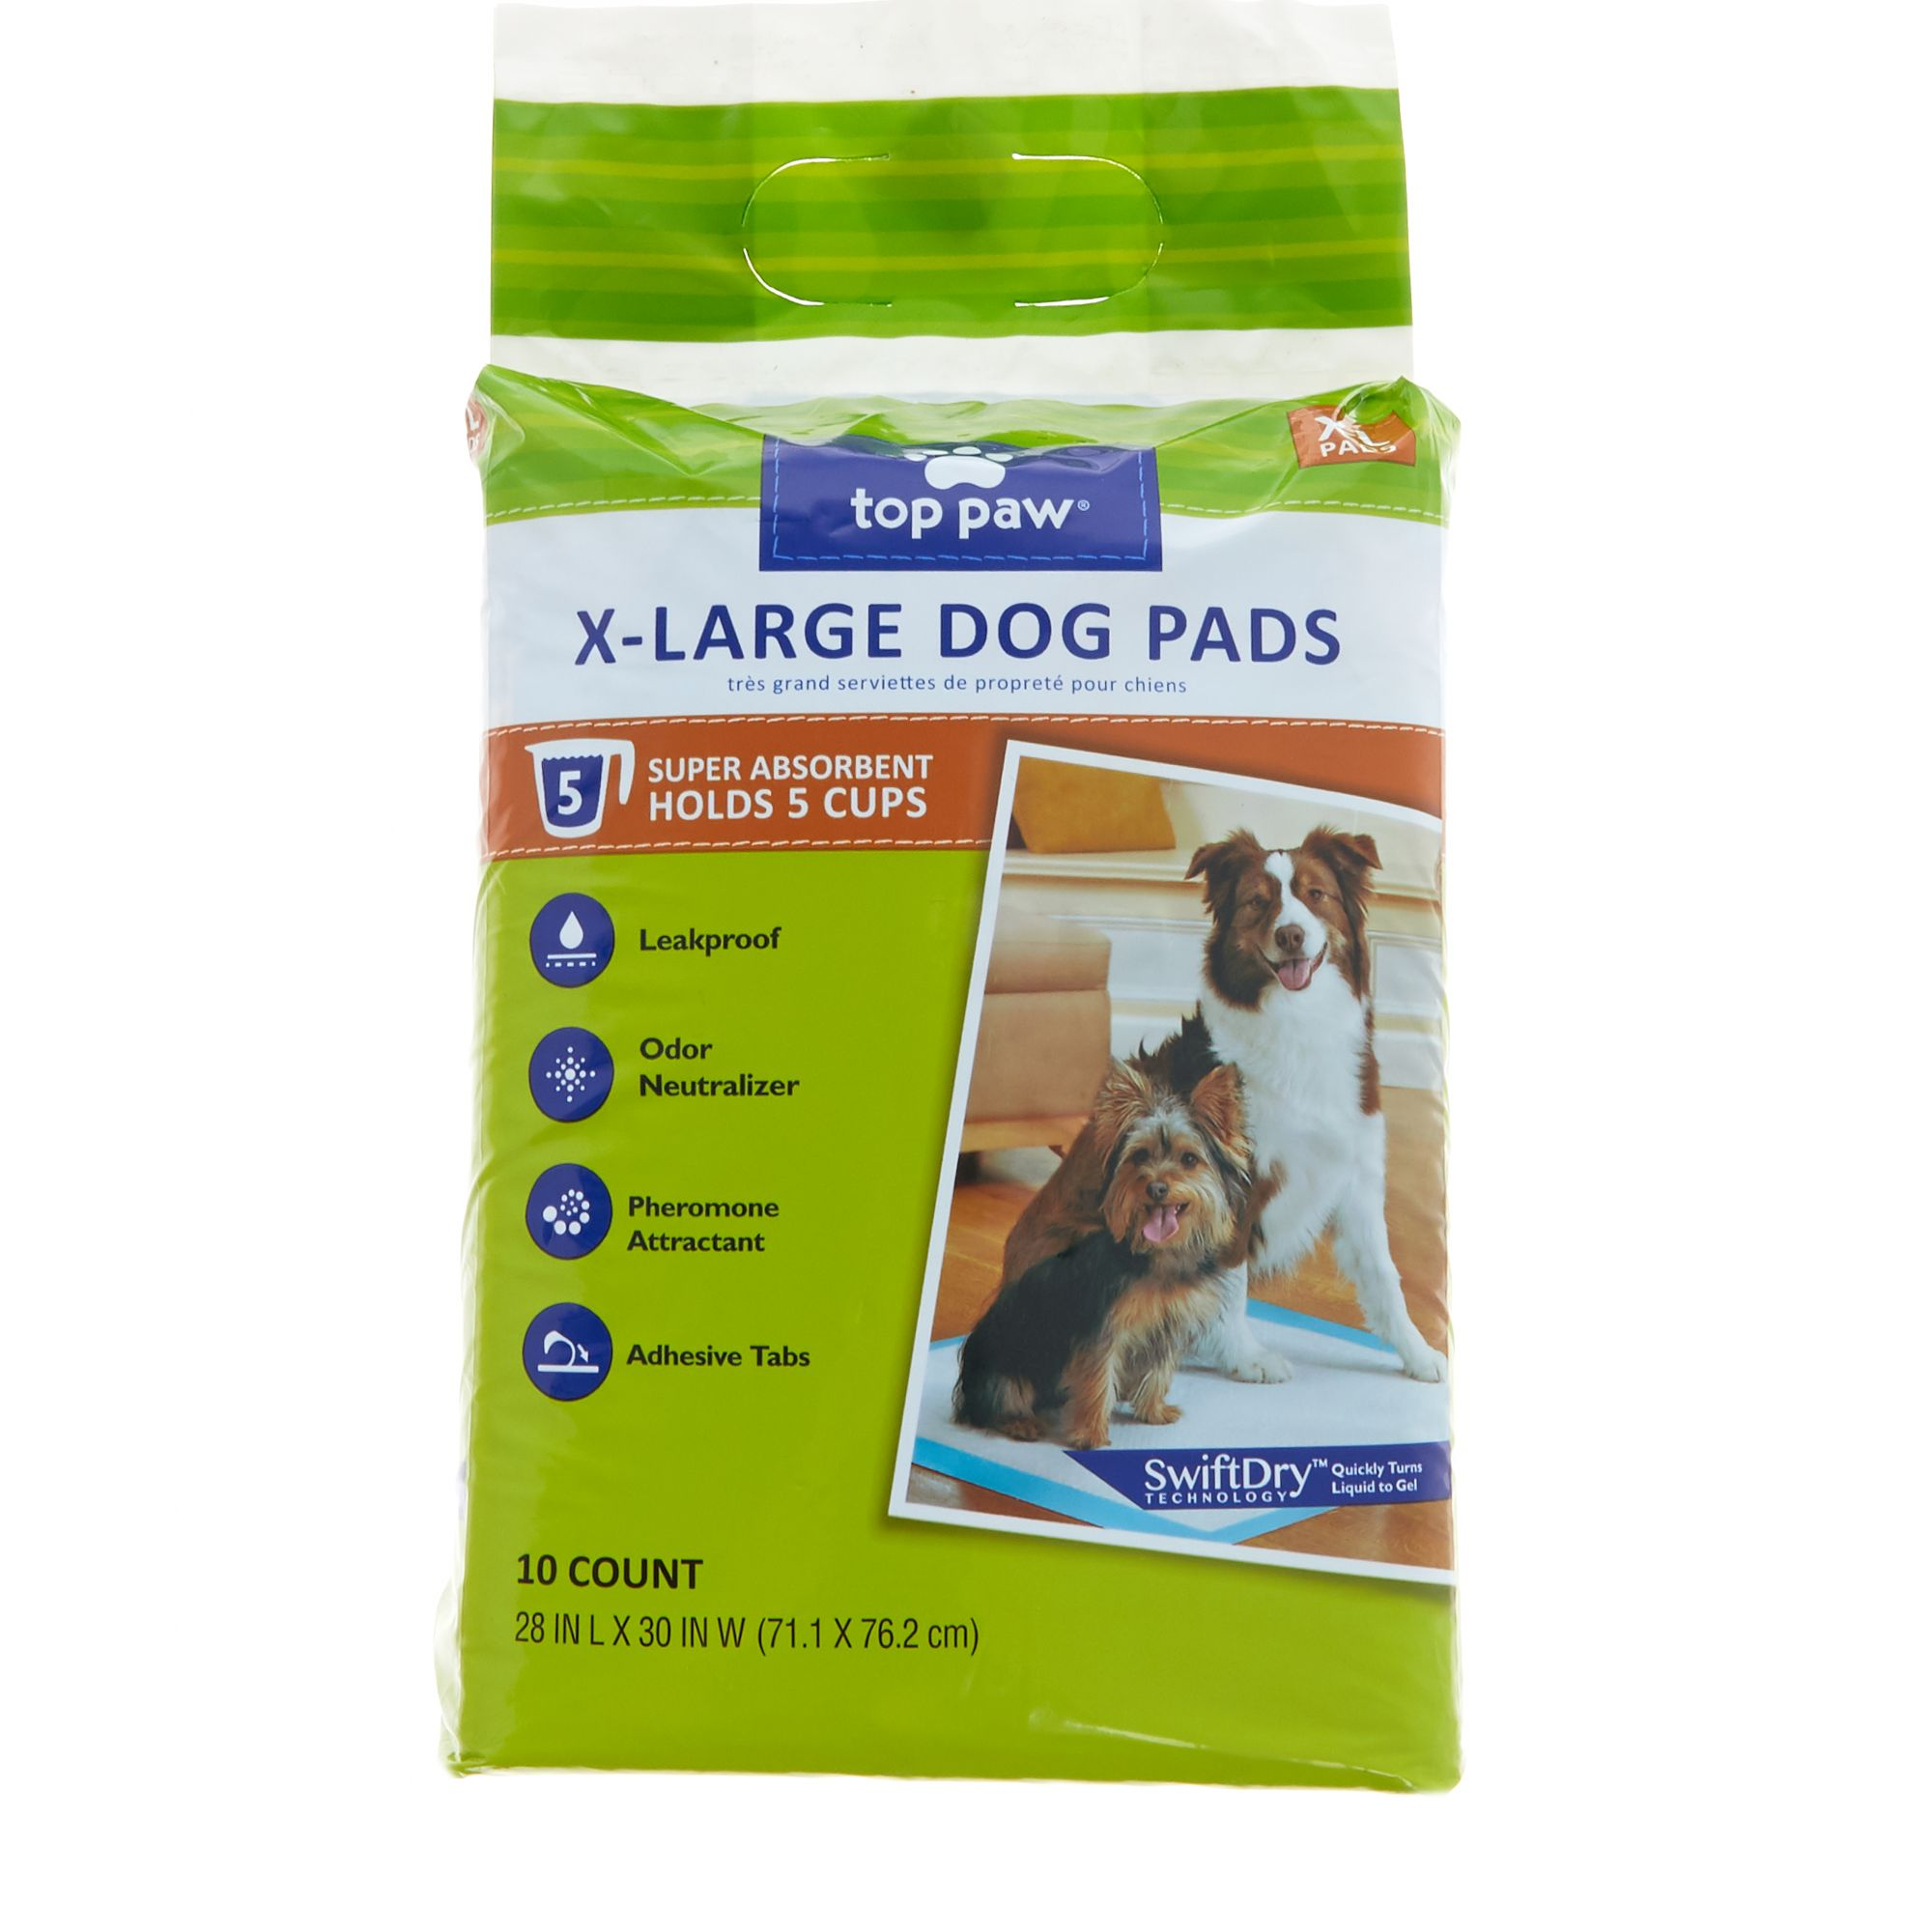 Top Paw X-Large Dog Pads size: 10 Count 5270587